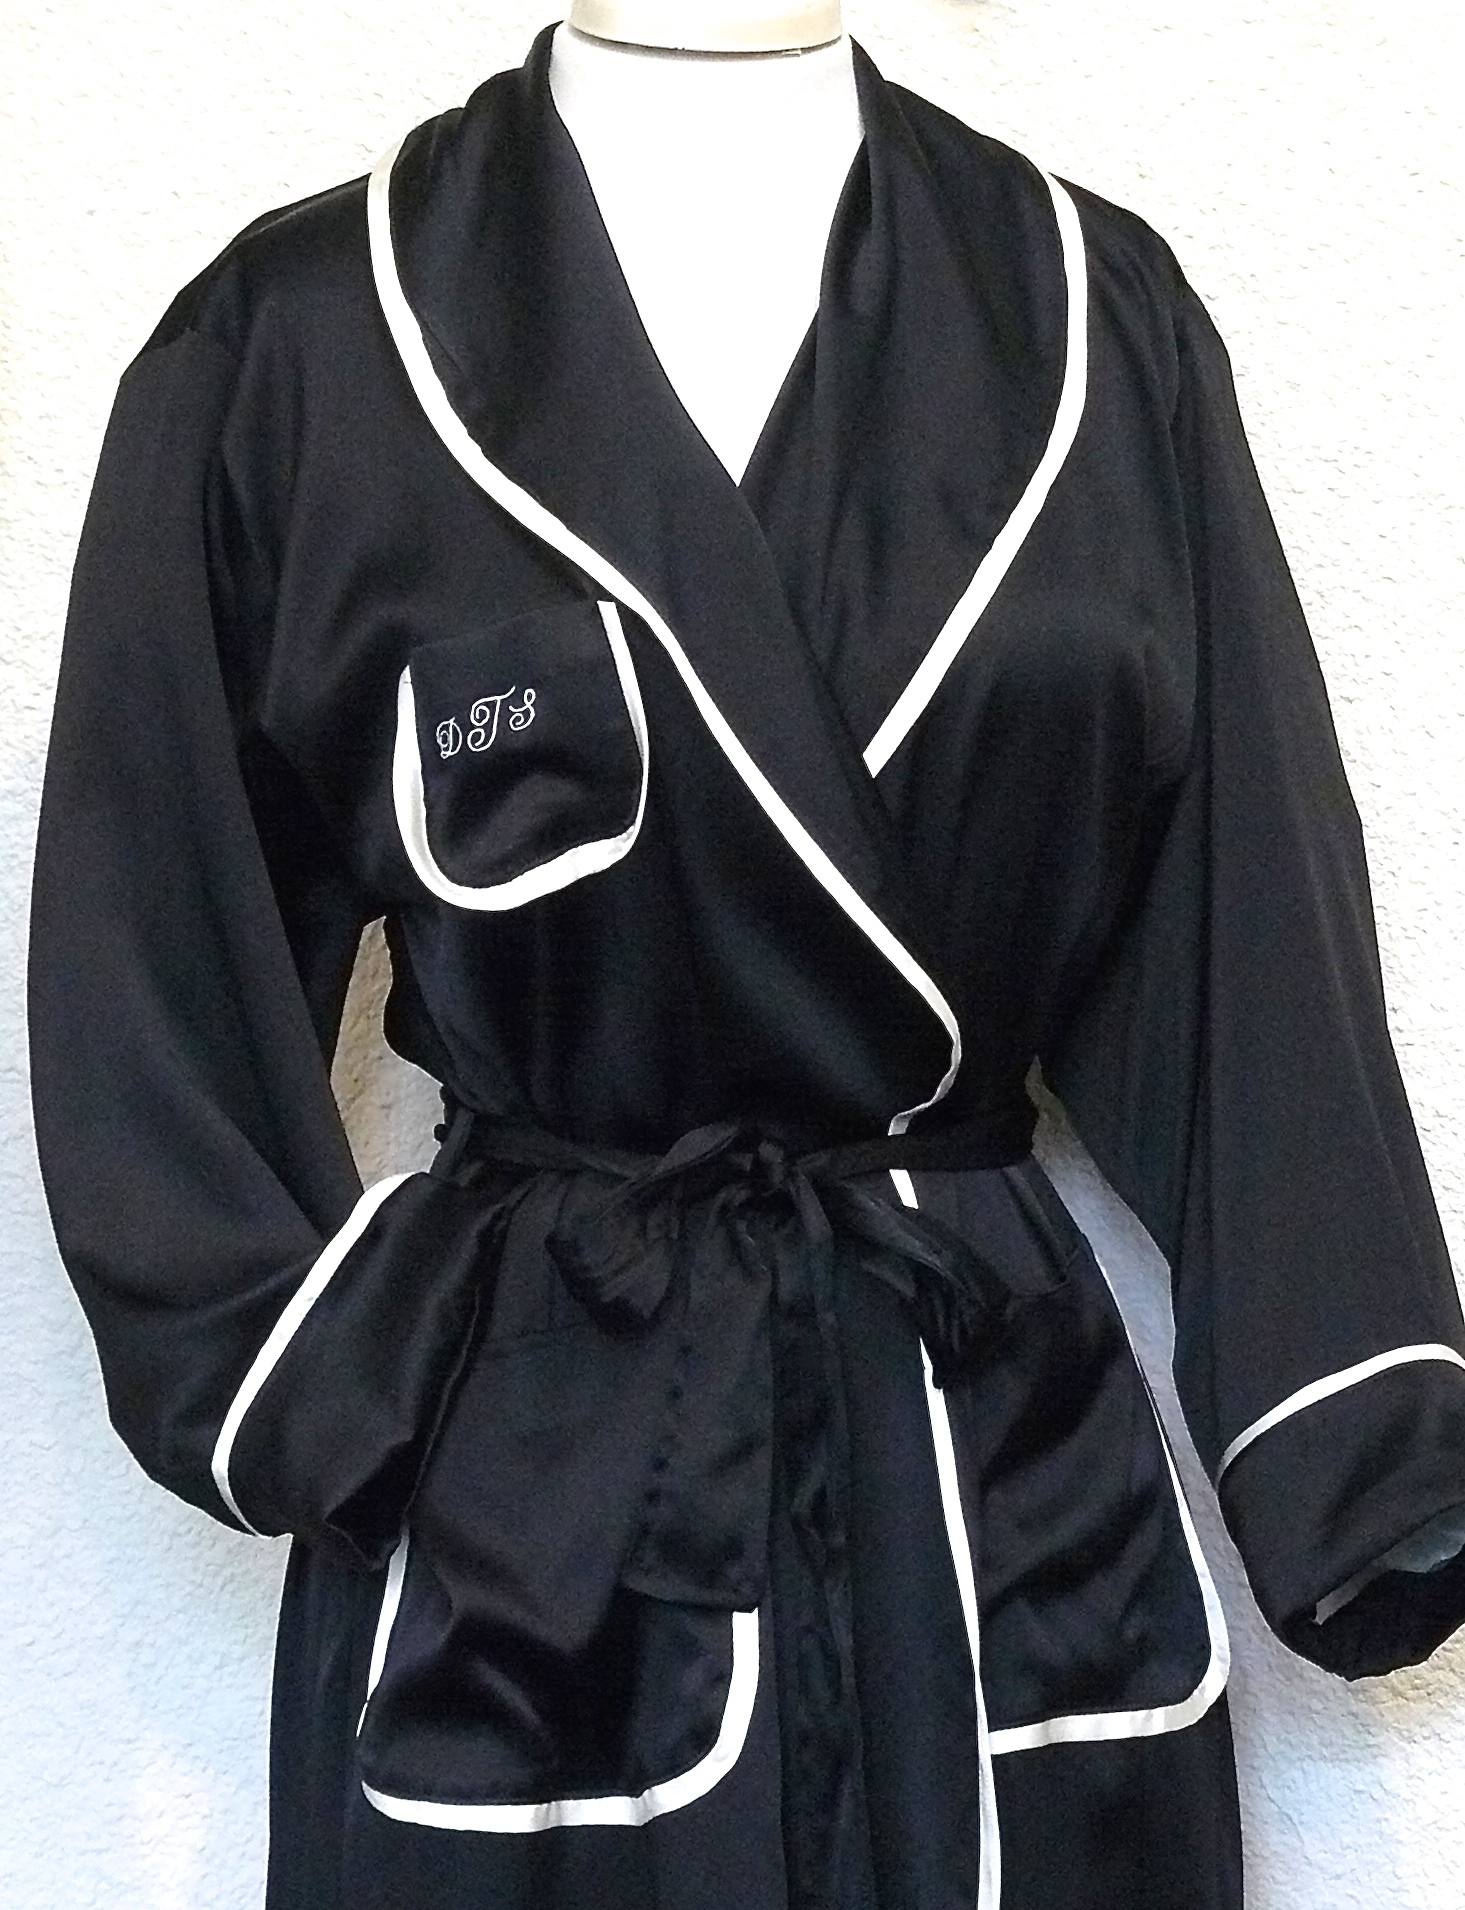 SILK ROBE CLASSIC WITH PIPING $410.00 black/creme